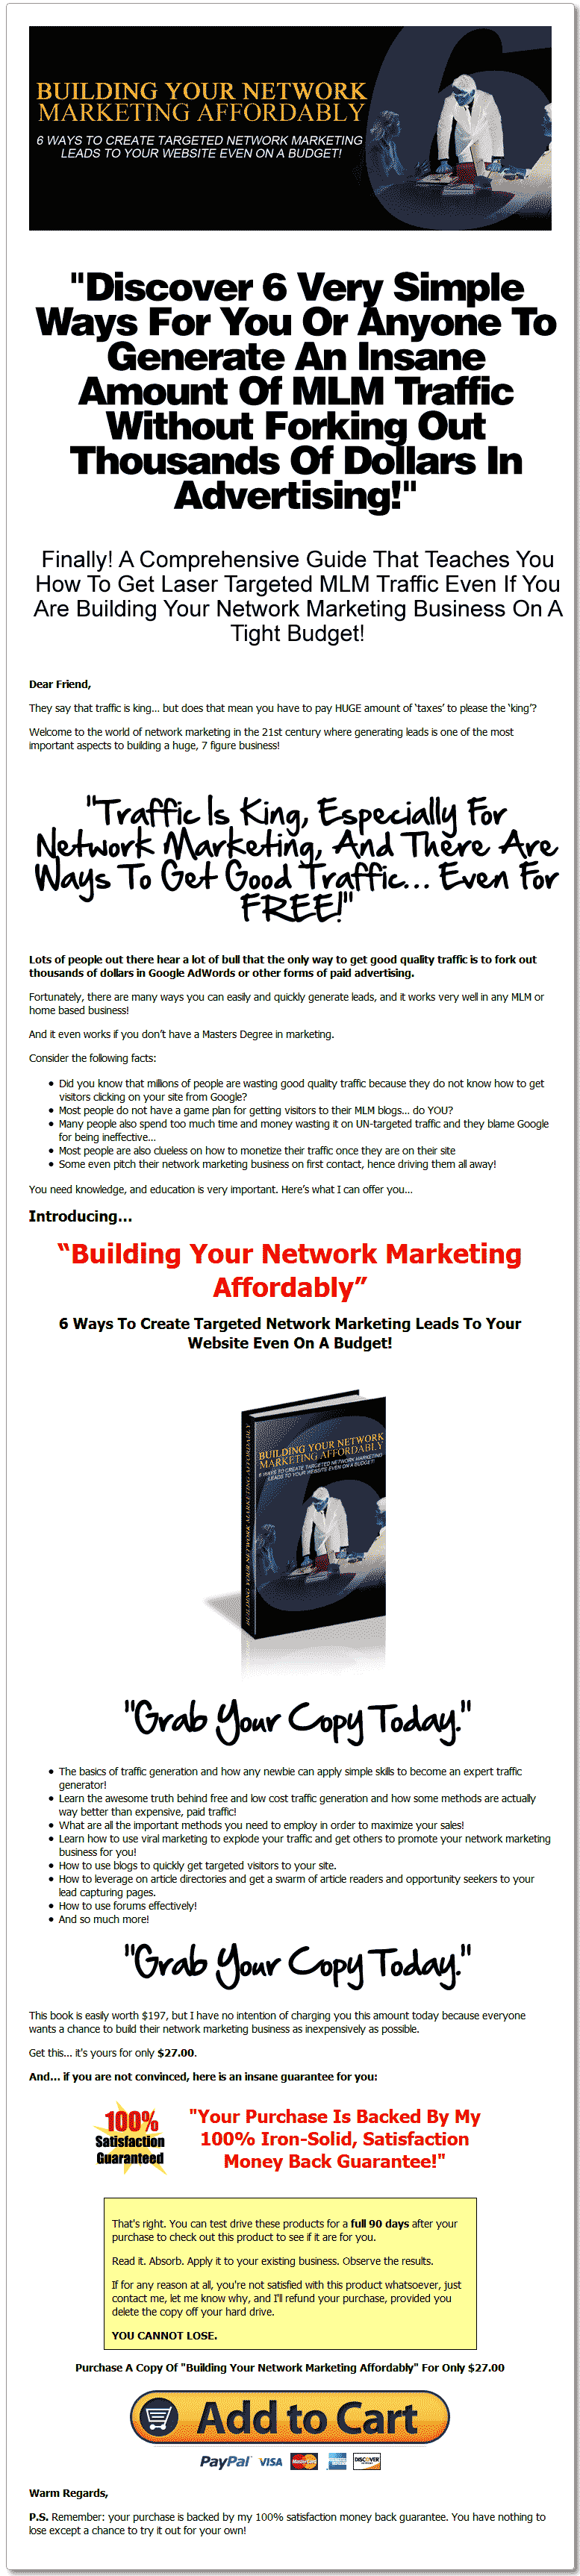 Online mlm blueprint report with master resale rights building your network marketing affordably mrr ebook mlm malvernweather Image collections